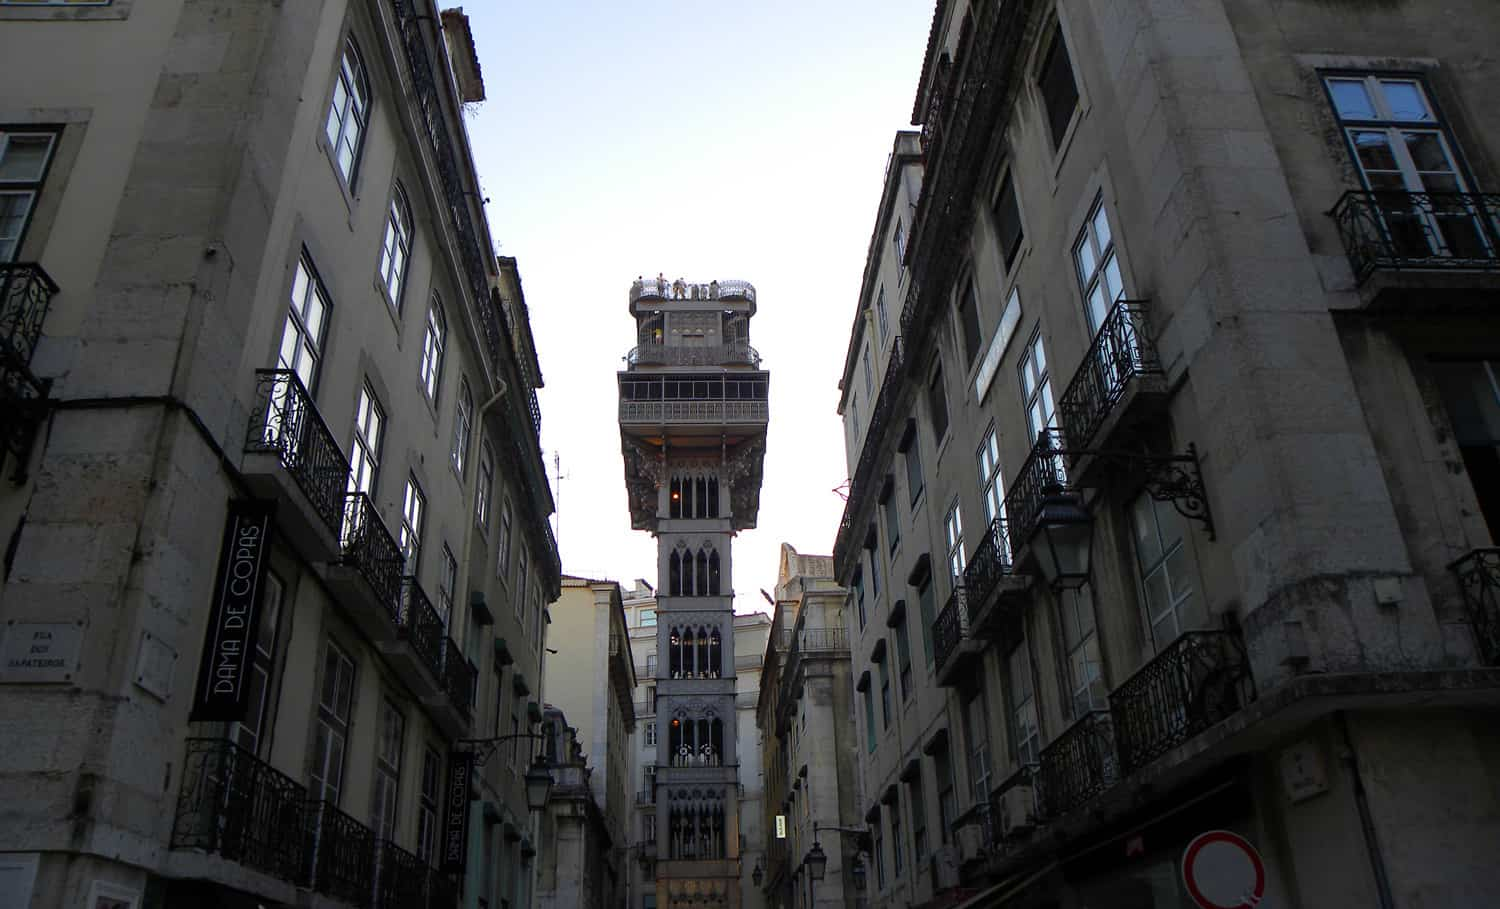 Elevador de Santa Justa. Photo Essay on Lisbon, Portugal. And why we were happy to leave…